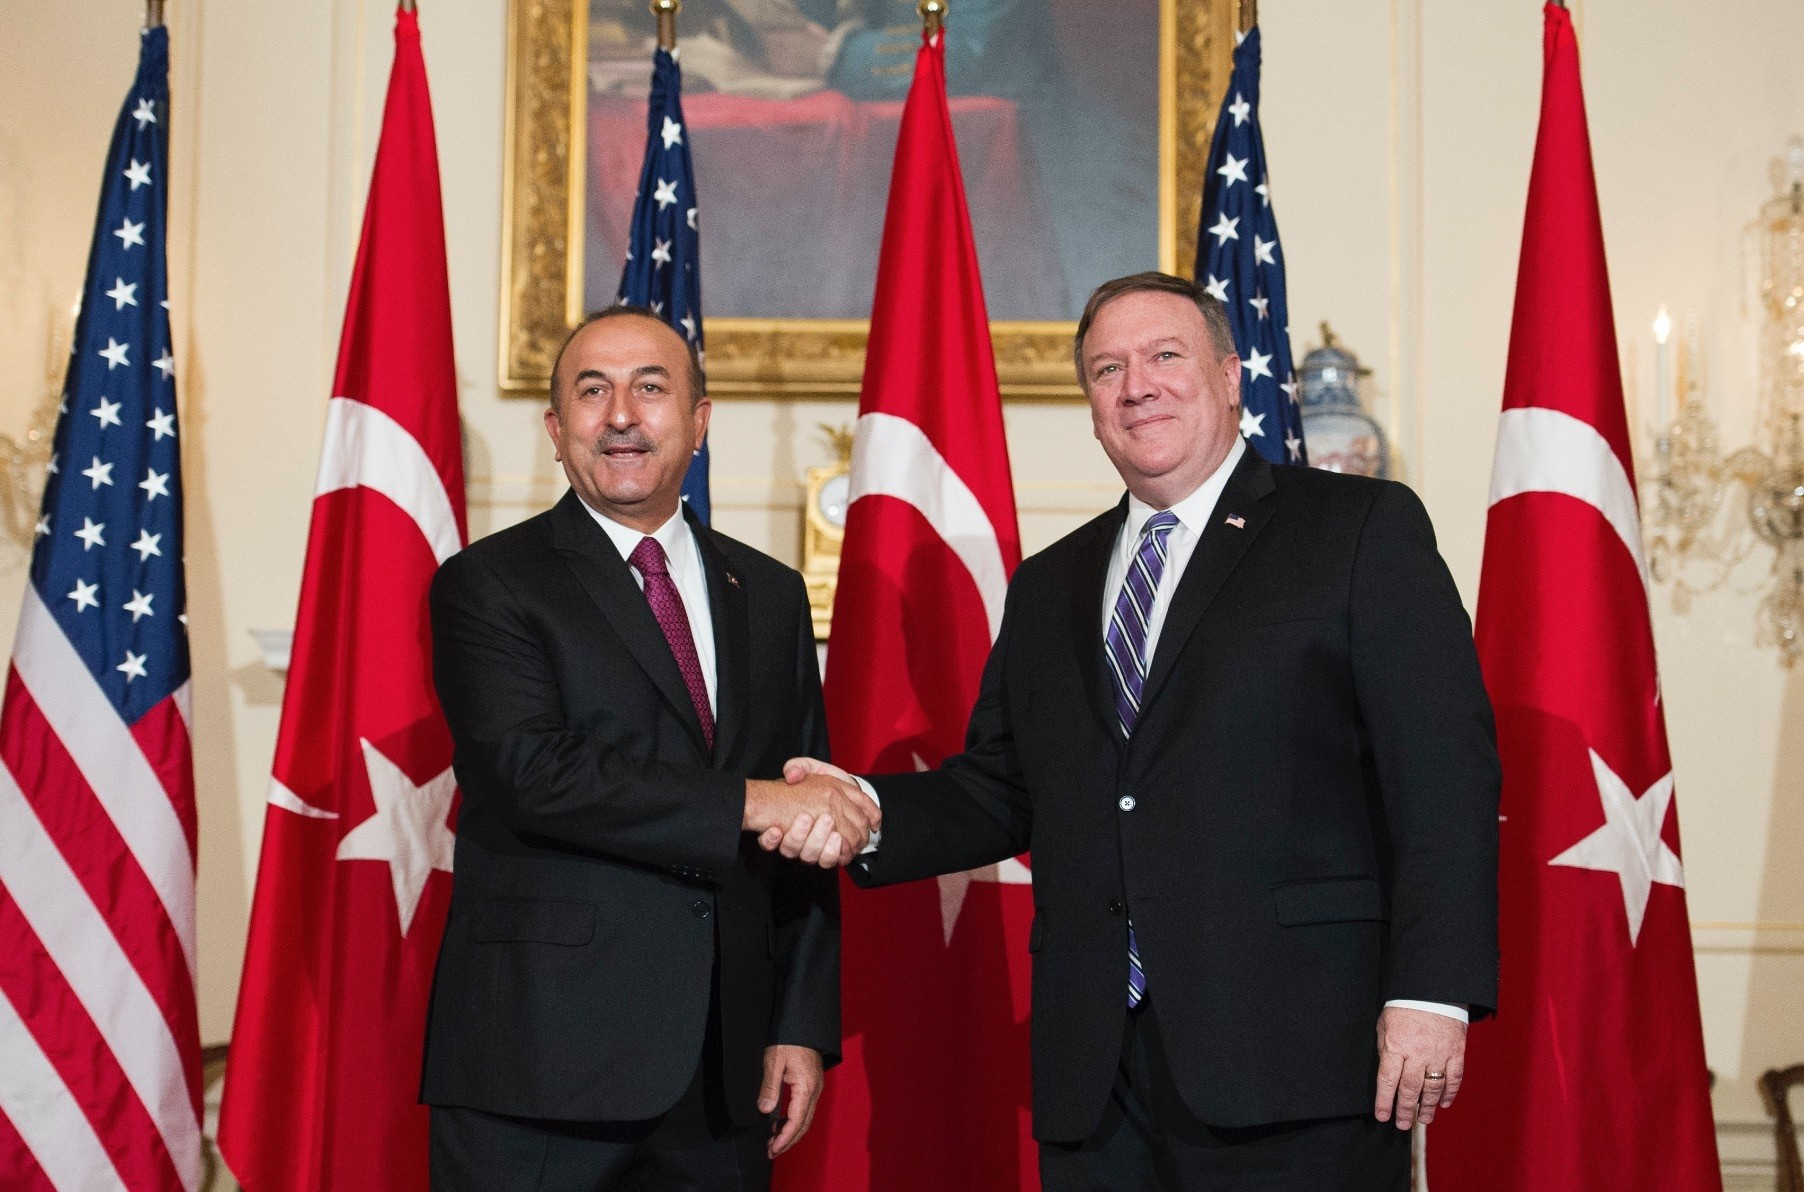 Foreign Minister Mevlu00fct u00c7avuu015fou011flu (L) with Secretary of State Mike Pompeo in the State Department in Washington, June 4.